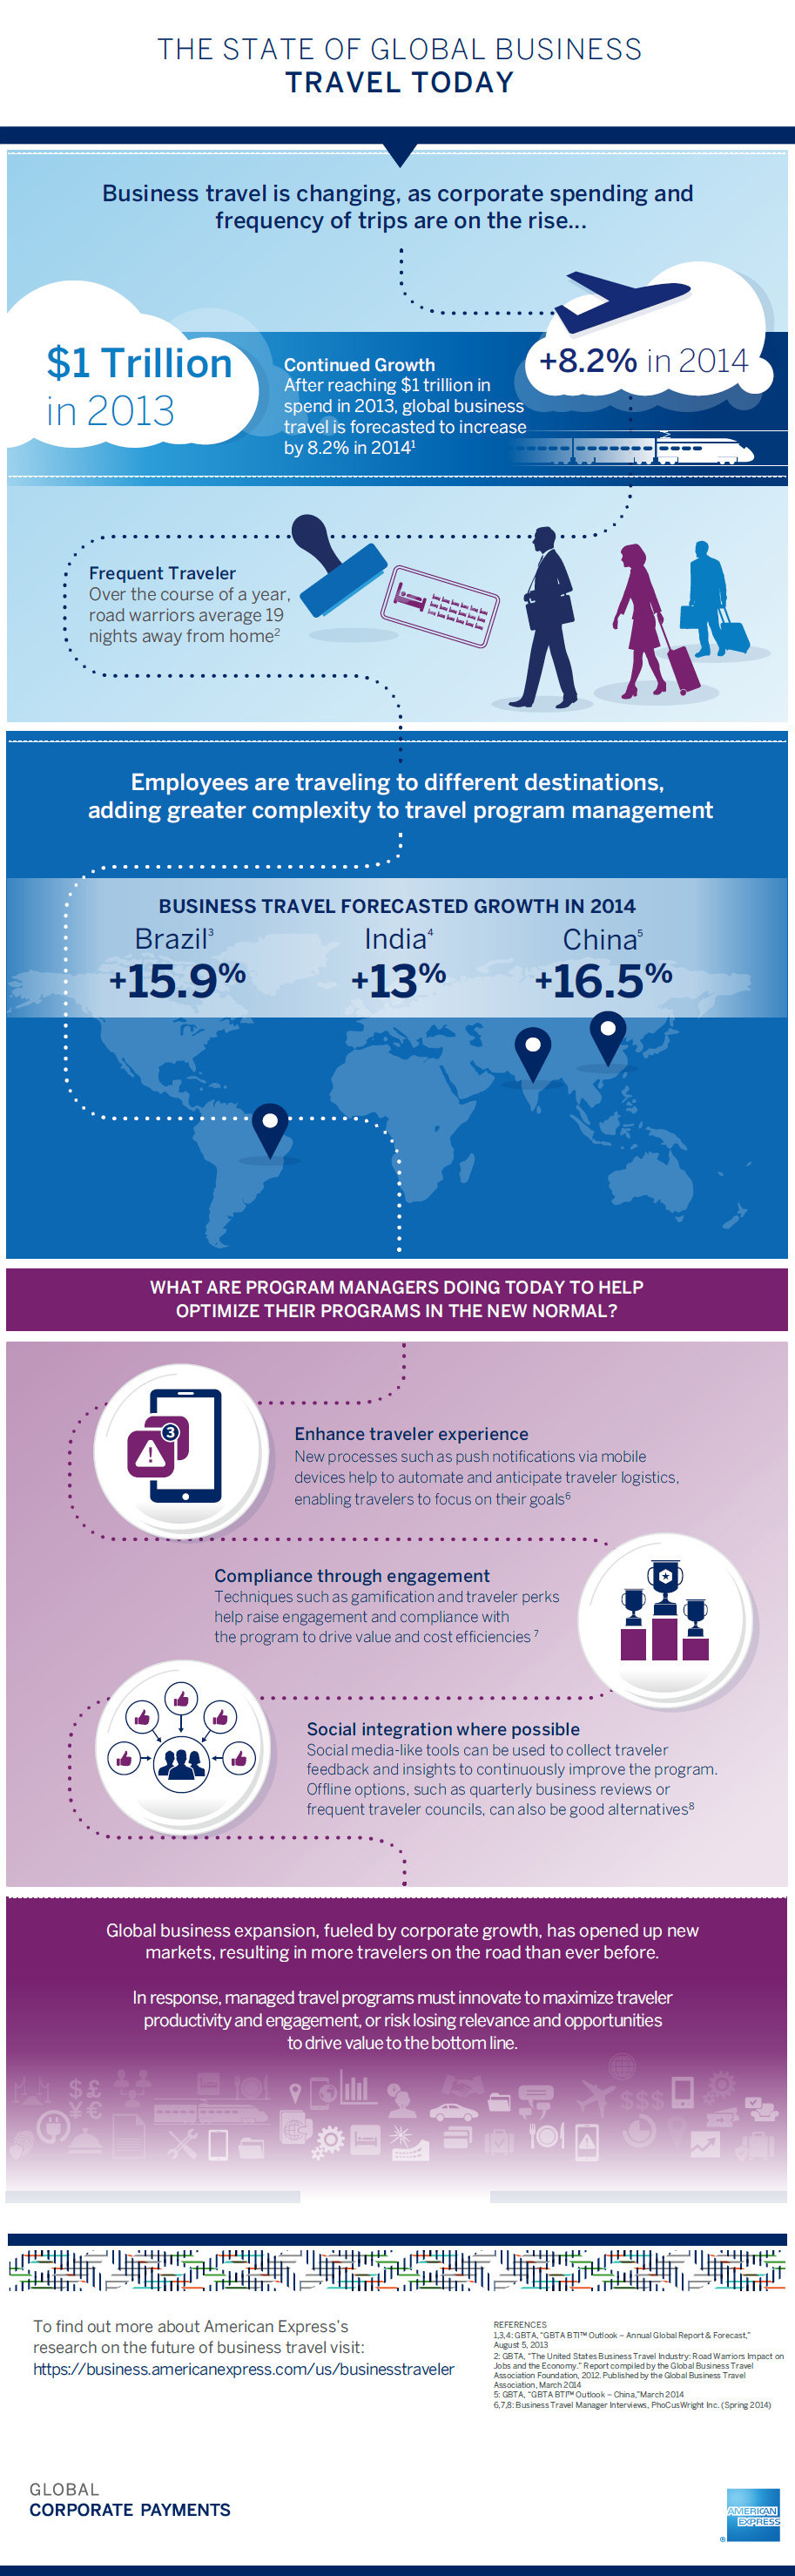 The State of Global Business Travel Today infographic